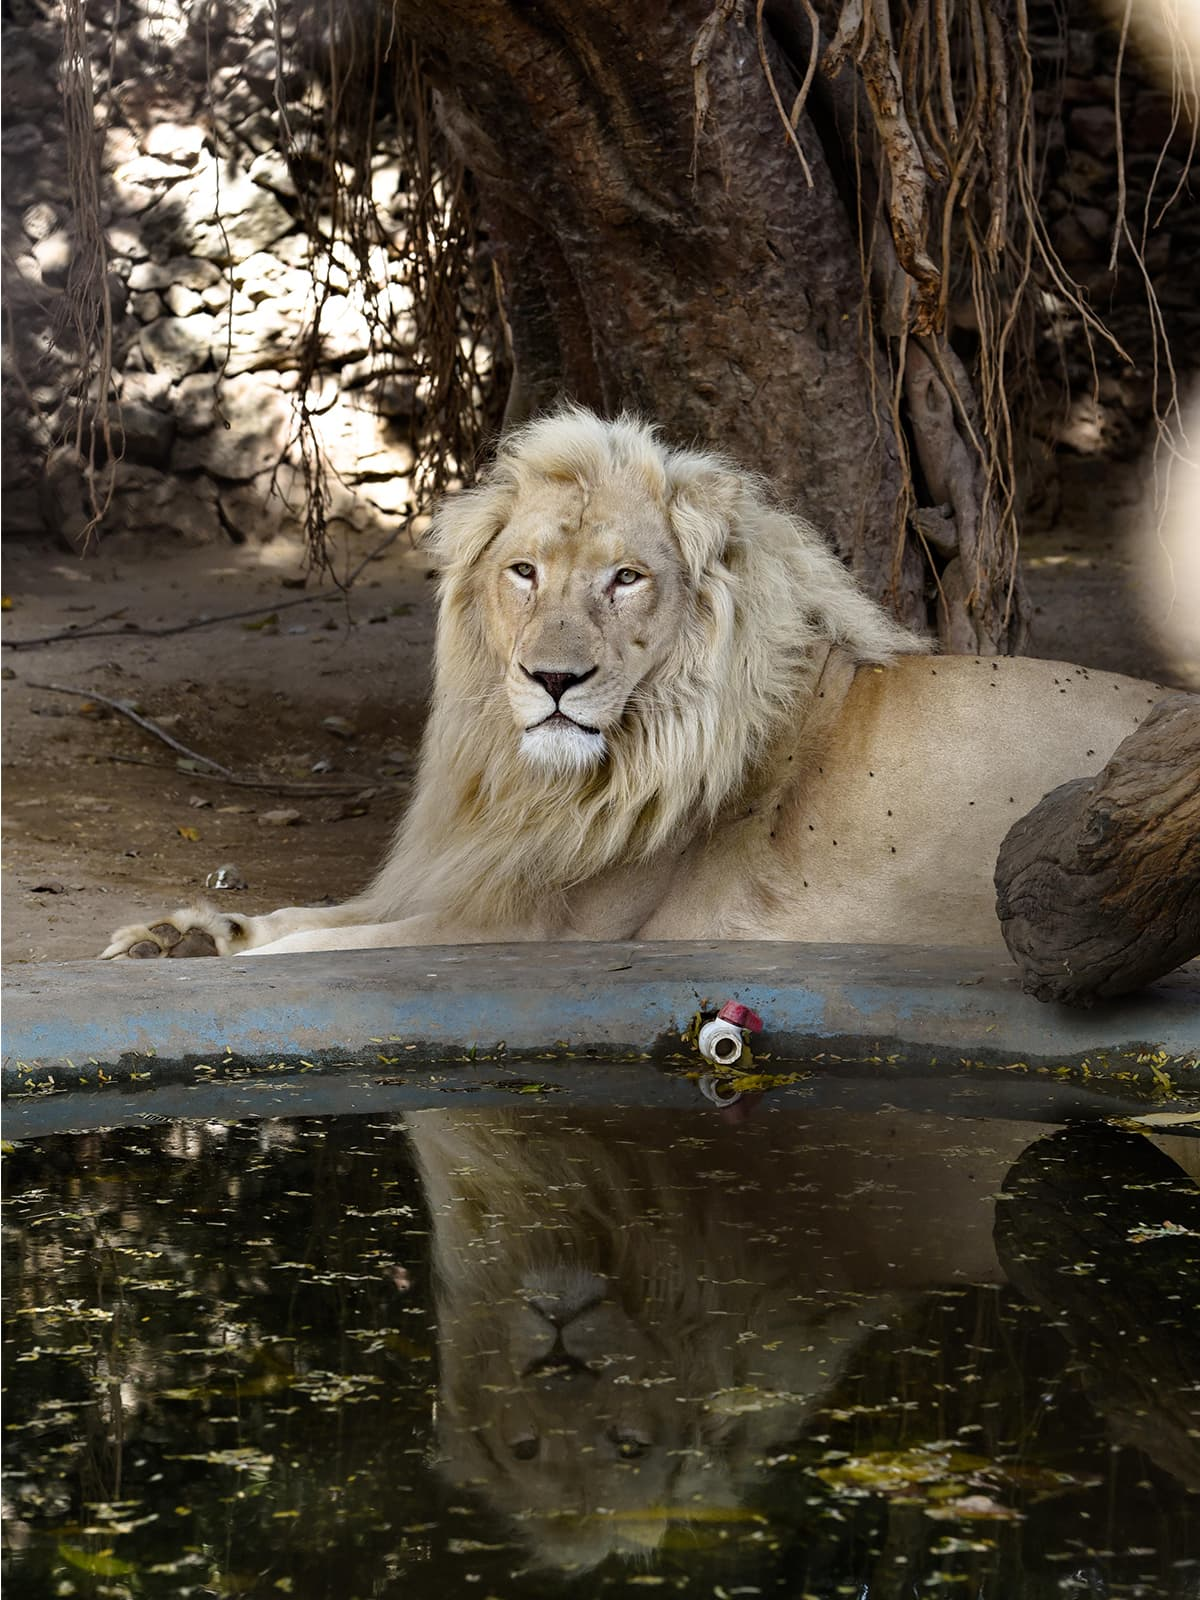 An African lion, also known as a Panthera leo, in its enclosure at the Karachi Zoo | Mohammad Ali, White Star